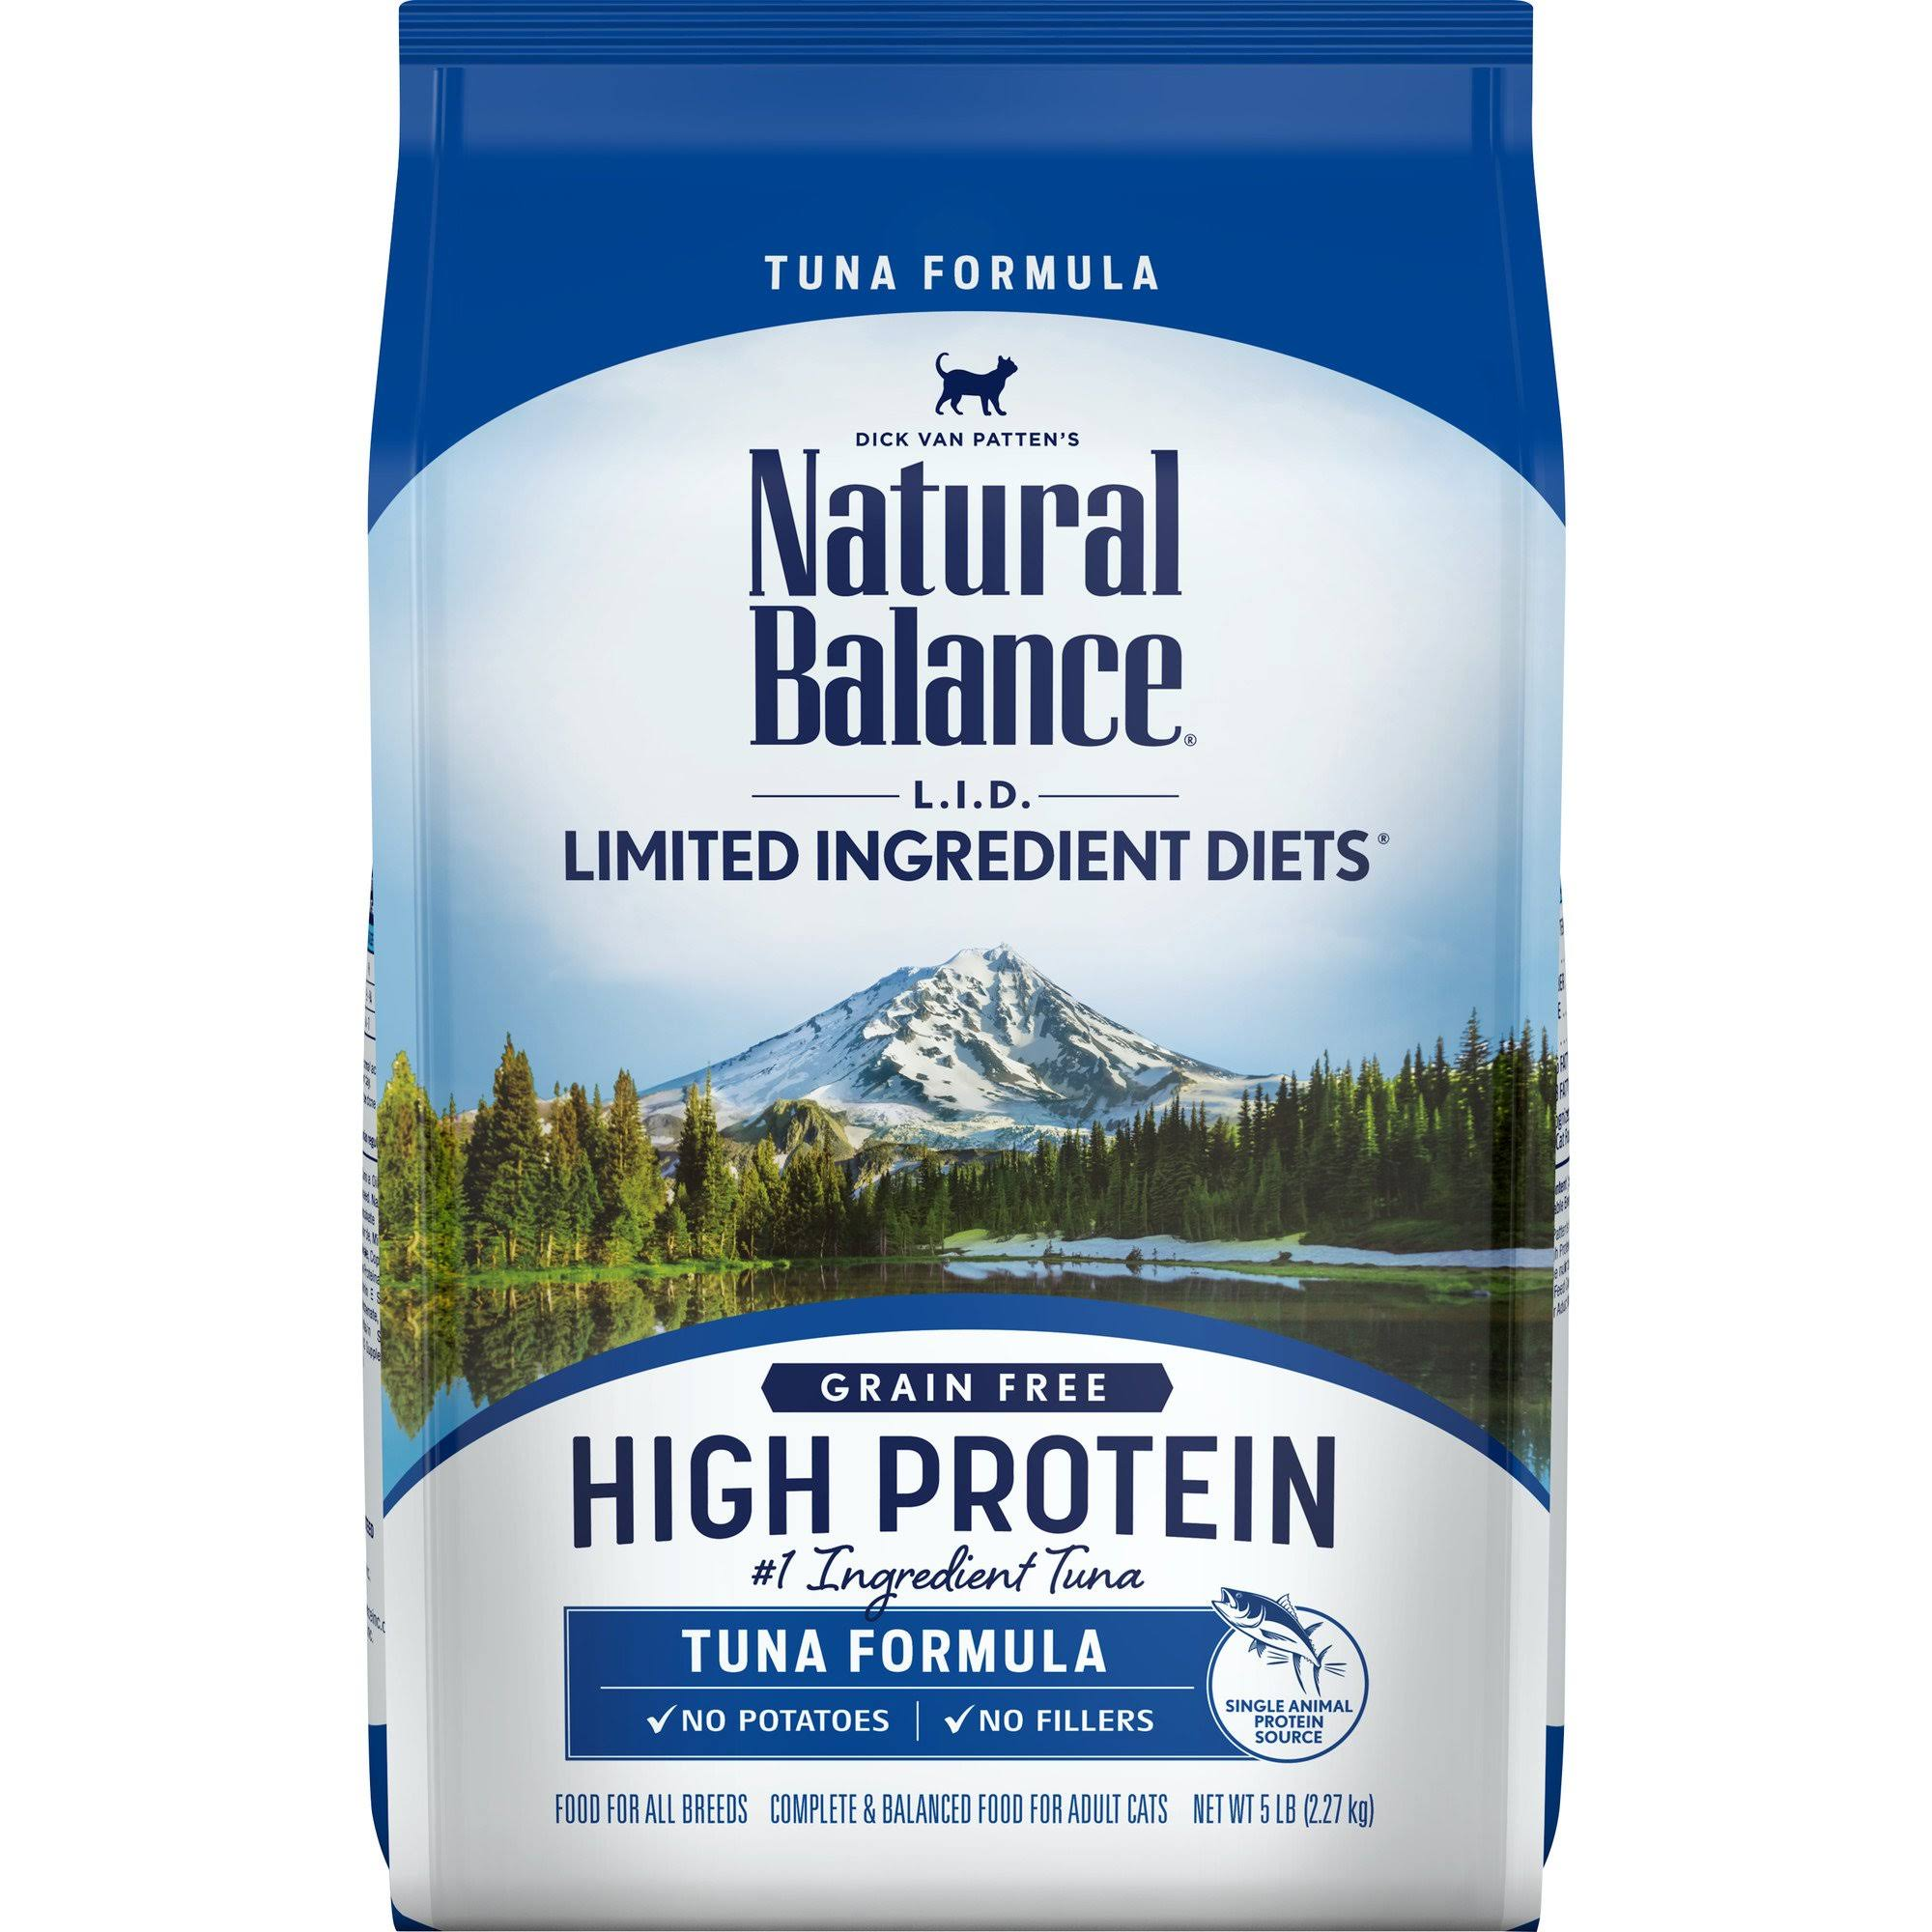 Natural Balance L.I.D. Limited Ingredient Diets High Protein Tuna Formula Dry Cat Food 5 lbs